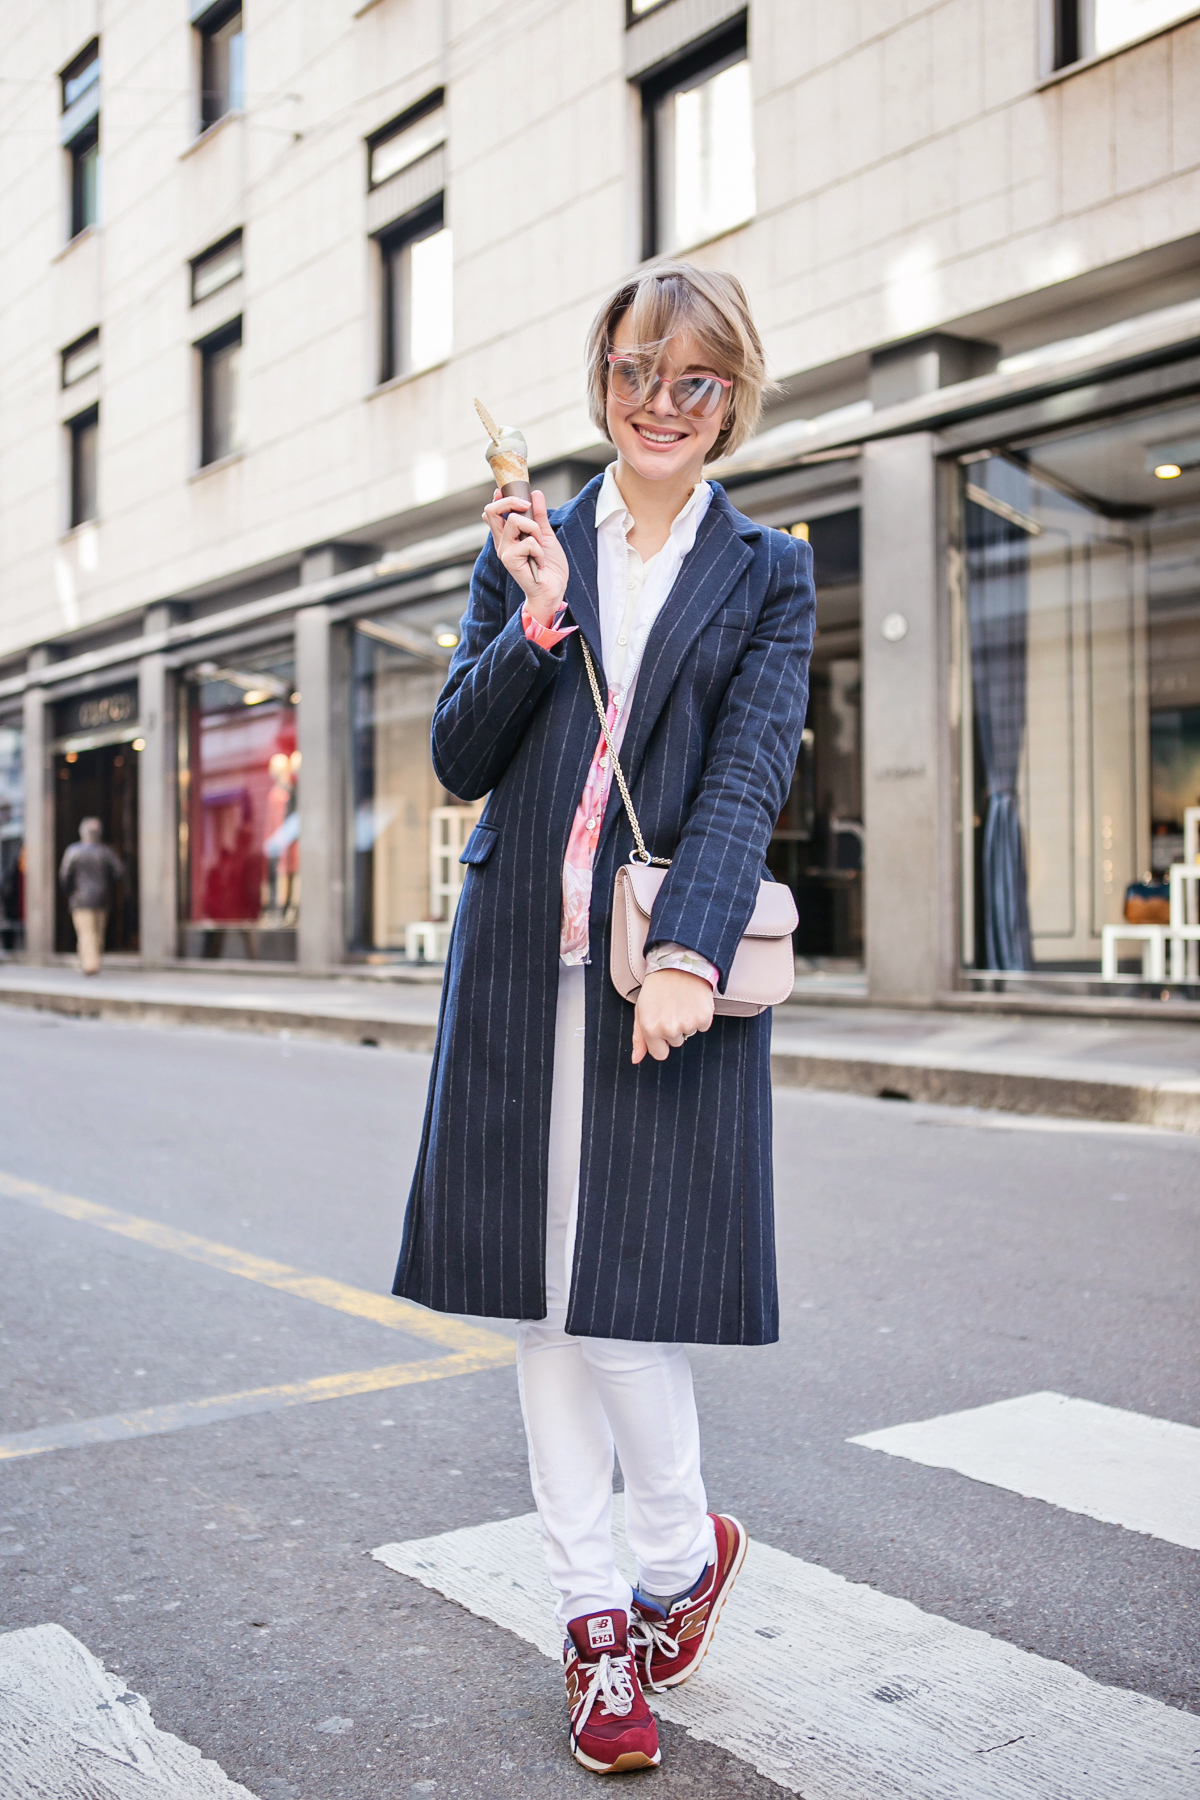 thecablook darya kamalova russian italian blogger street style short blonde hair mfw milan zara stripes coat valentino rock stud bag asos white jeans new balance trainers la rinascente terrazza aperol excelsior montenapoleone via duomo-19